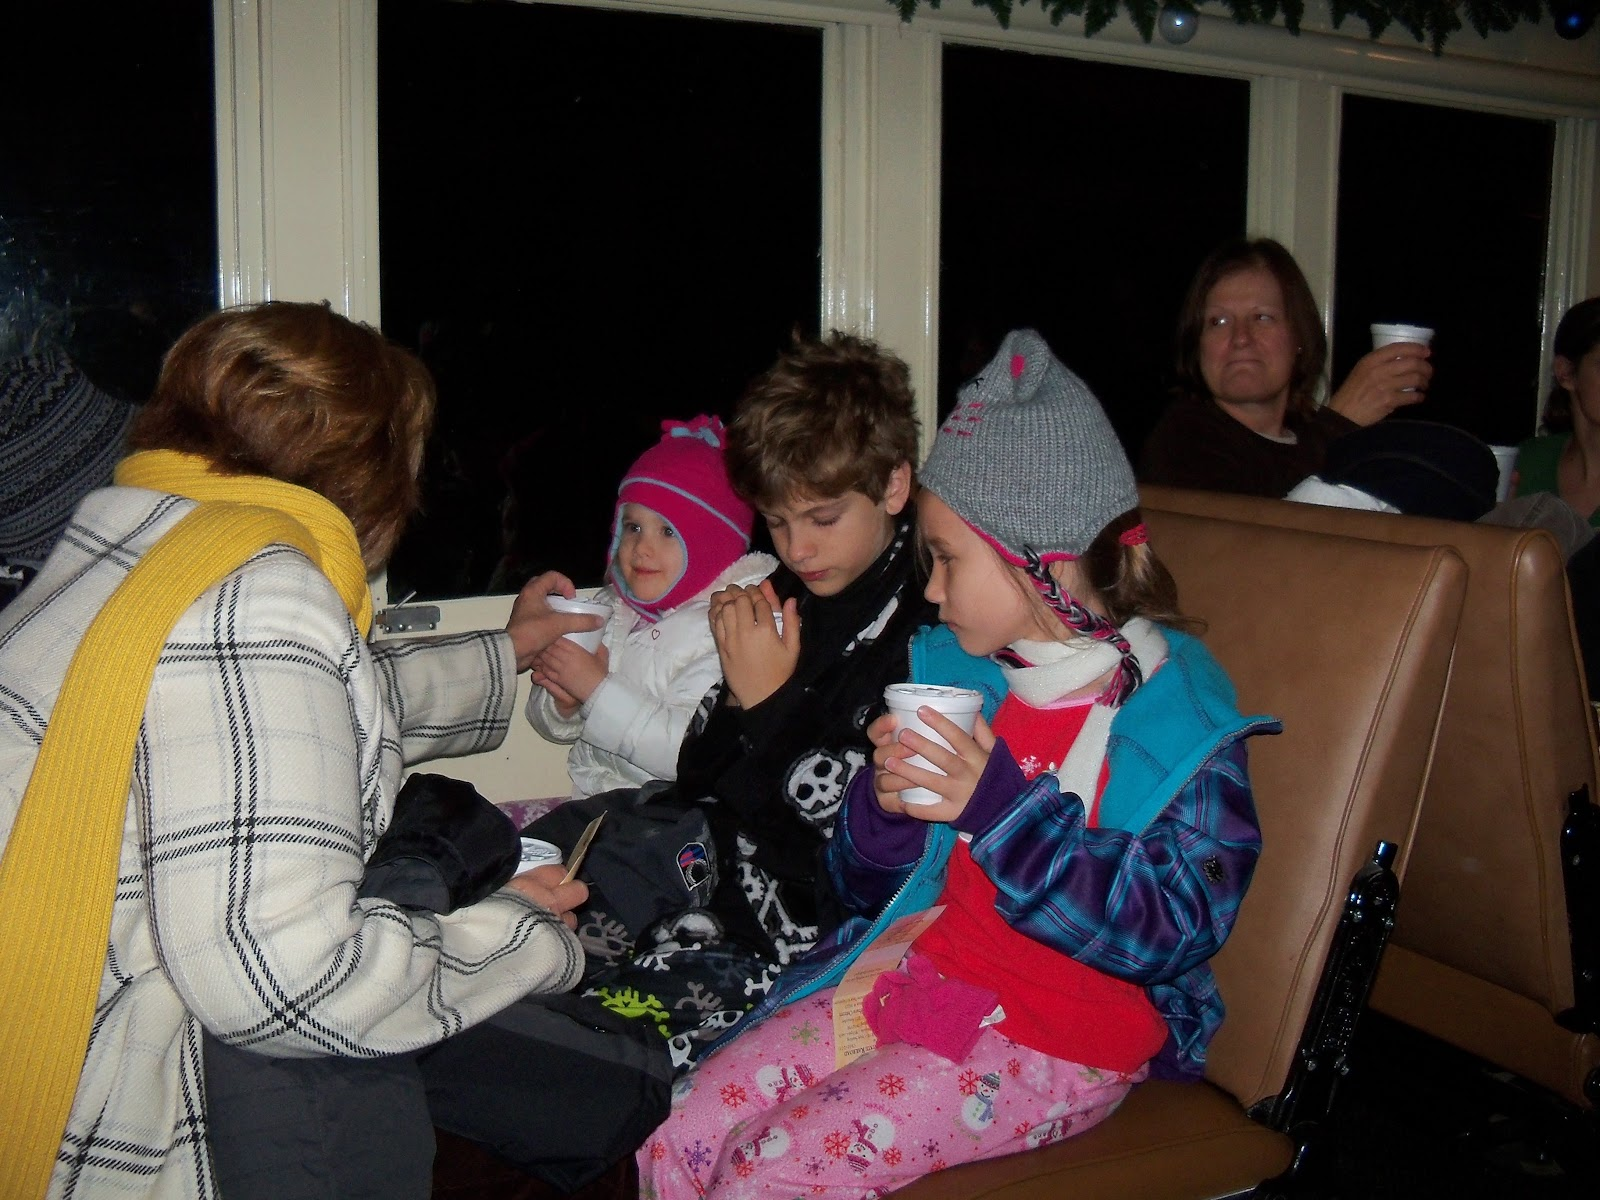 Polar Express Christmas Train 2011 - 115_0935.JPG